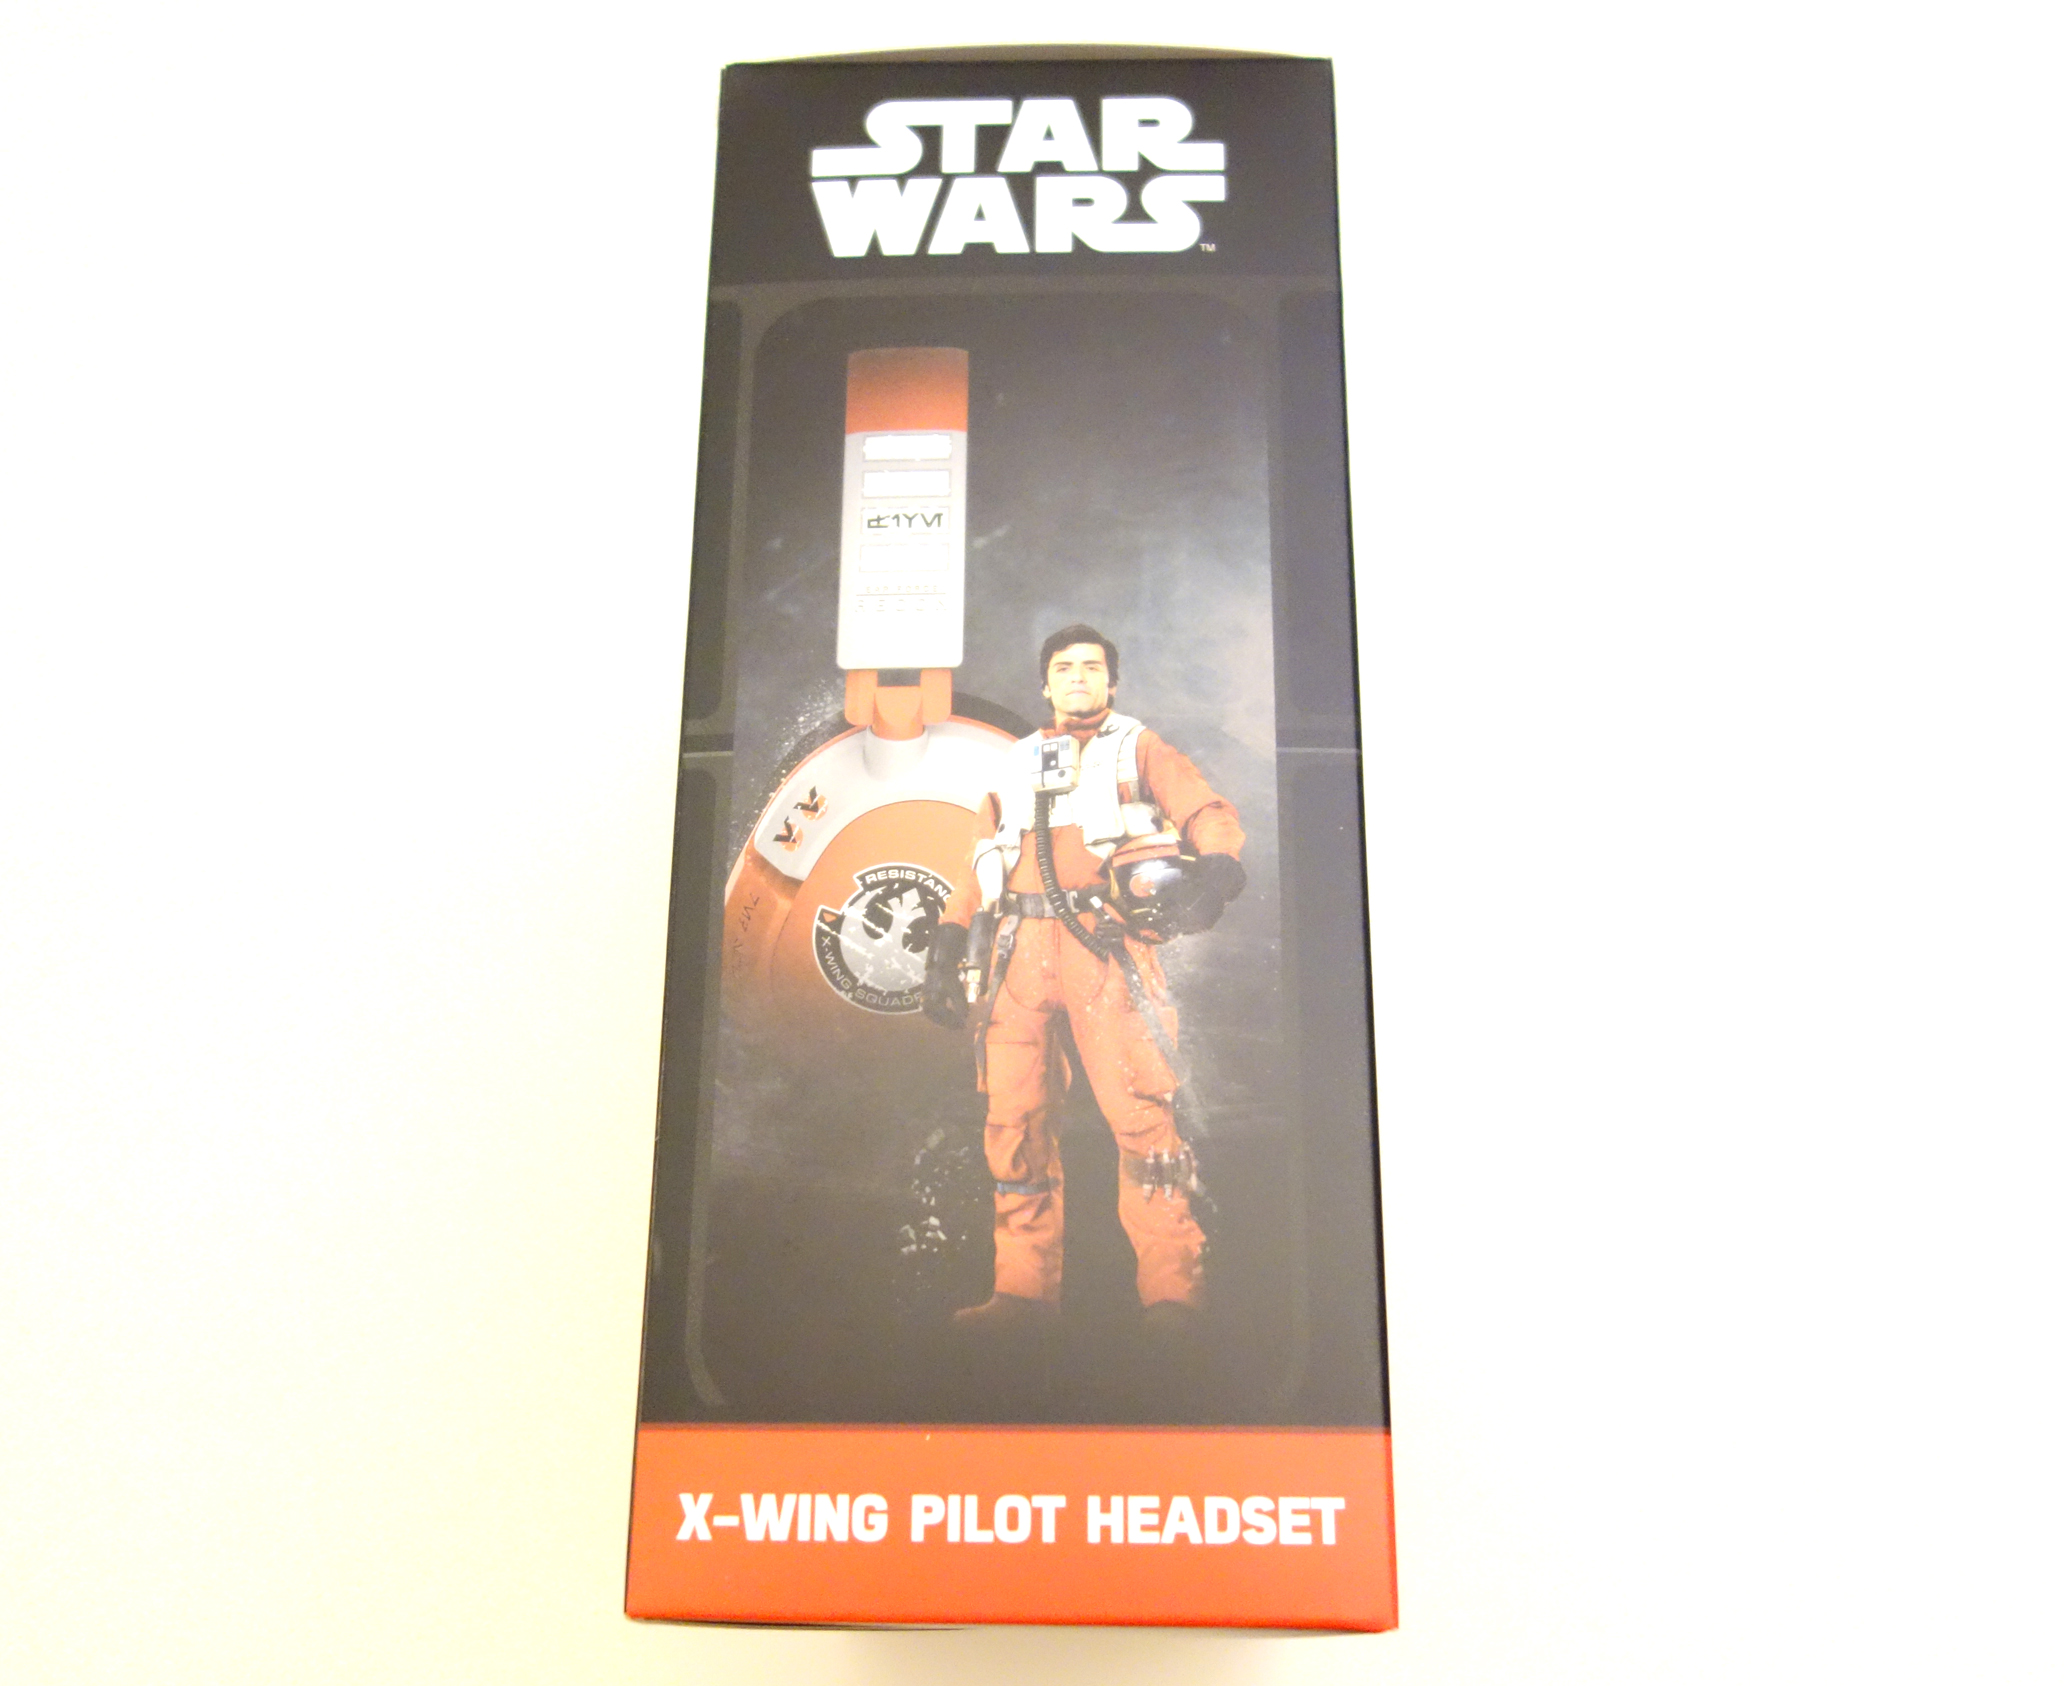 Turtle Beach Star Wars X-Wing Pilot Gaming Headset review box side